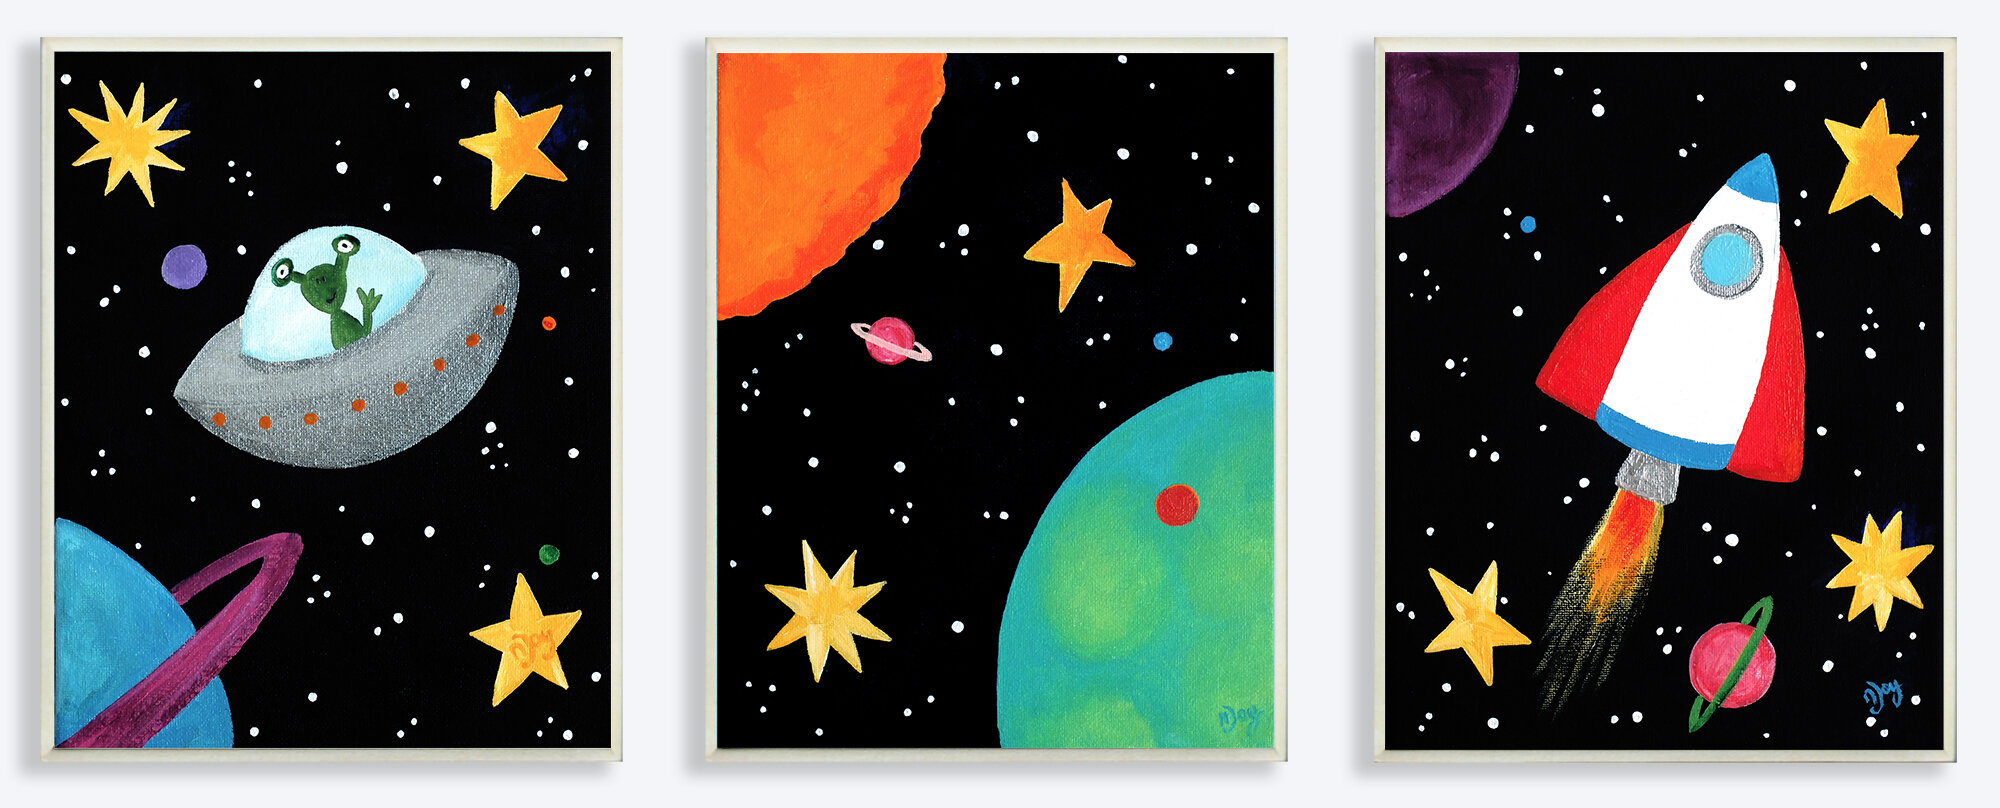 The kids room outer space triptych 3 piece graphic art for Wall decor outer space